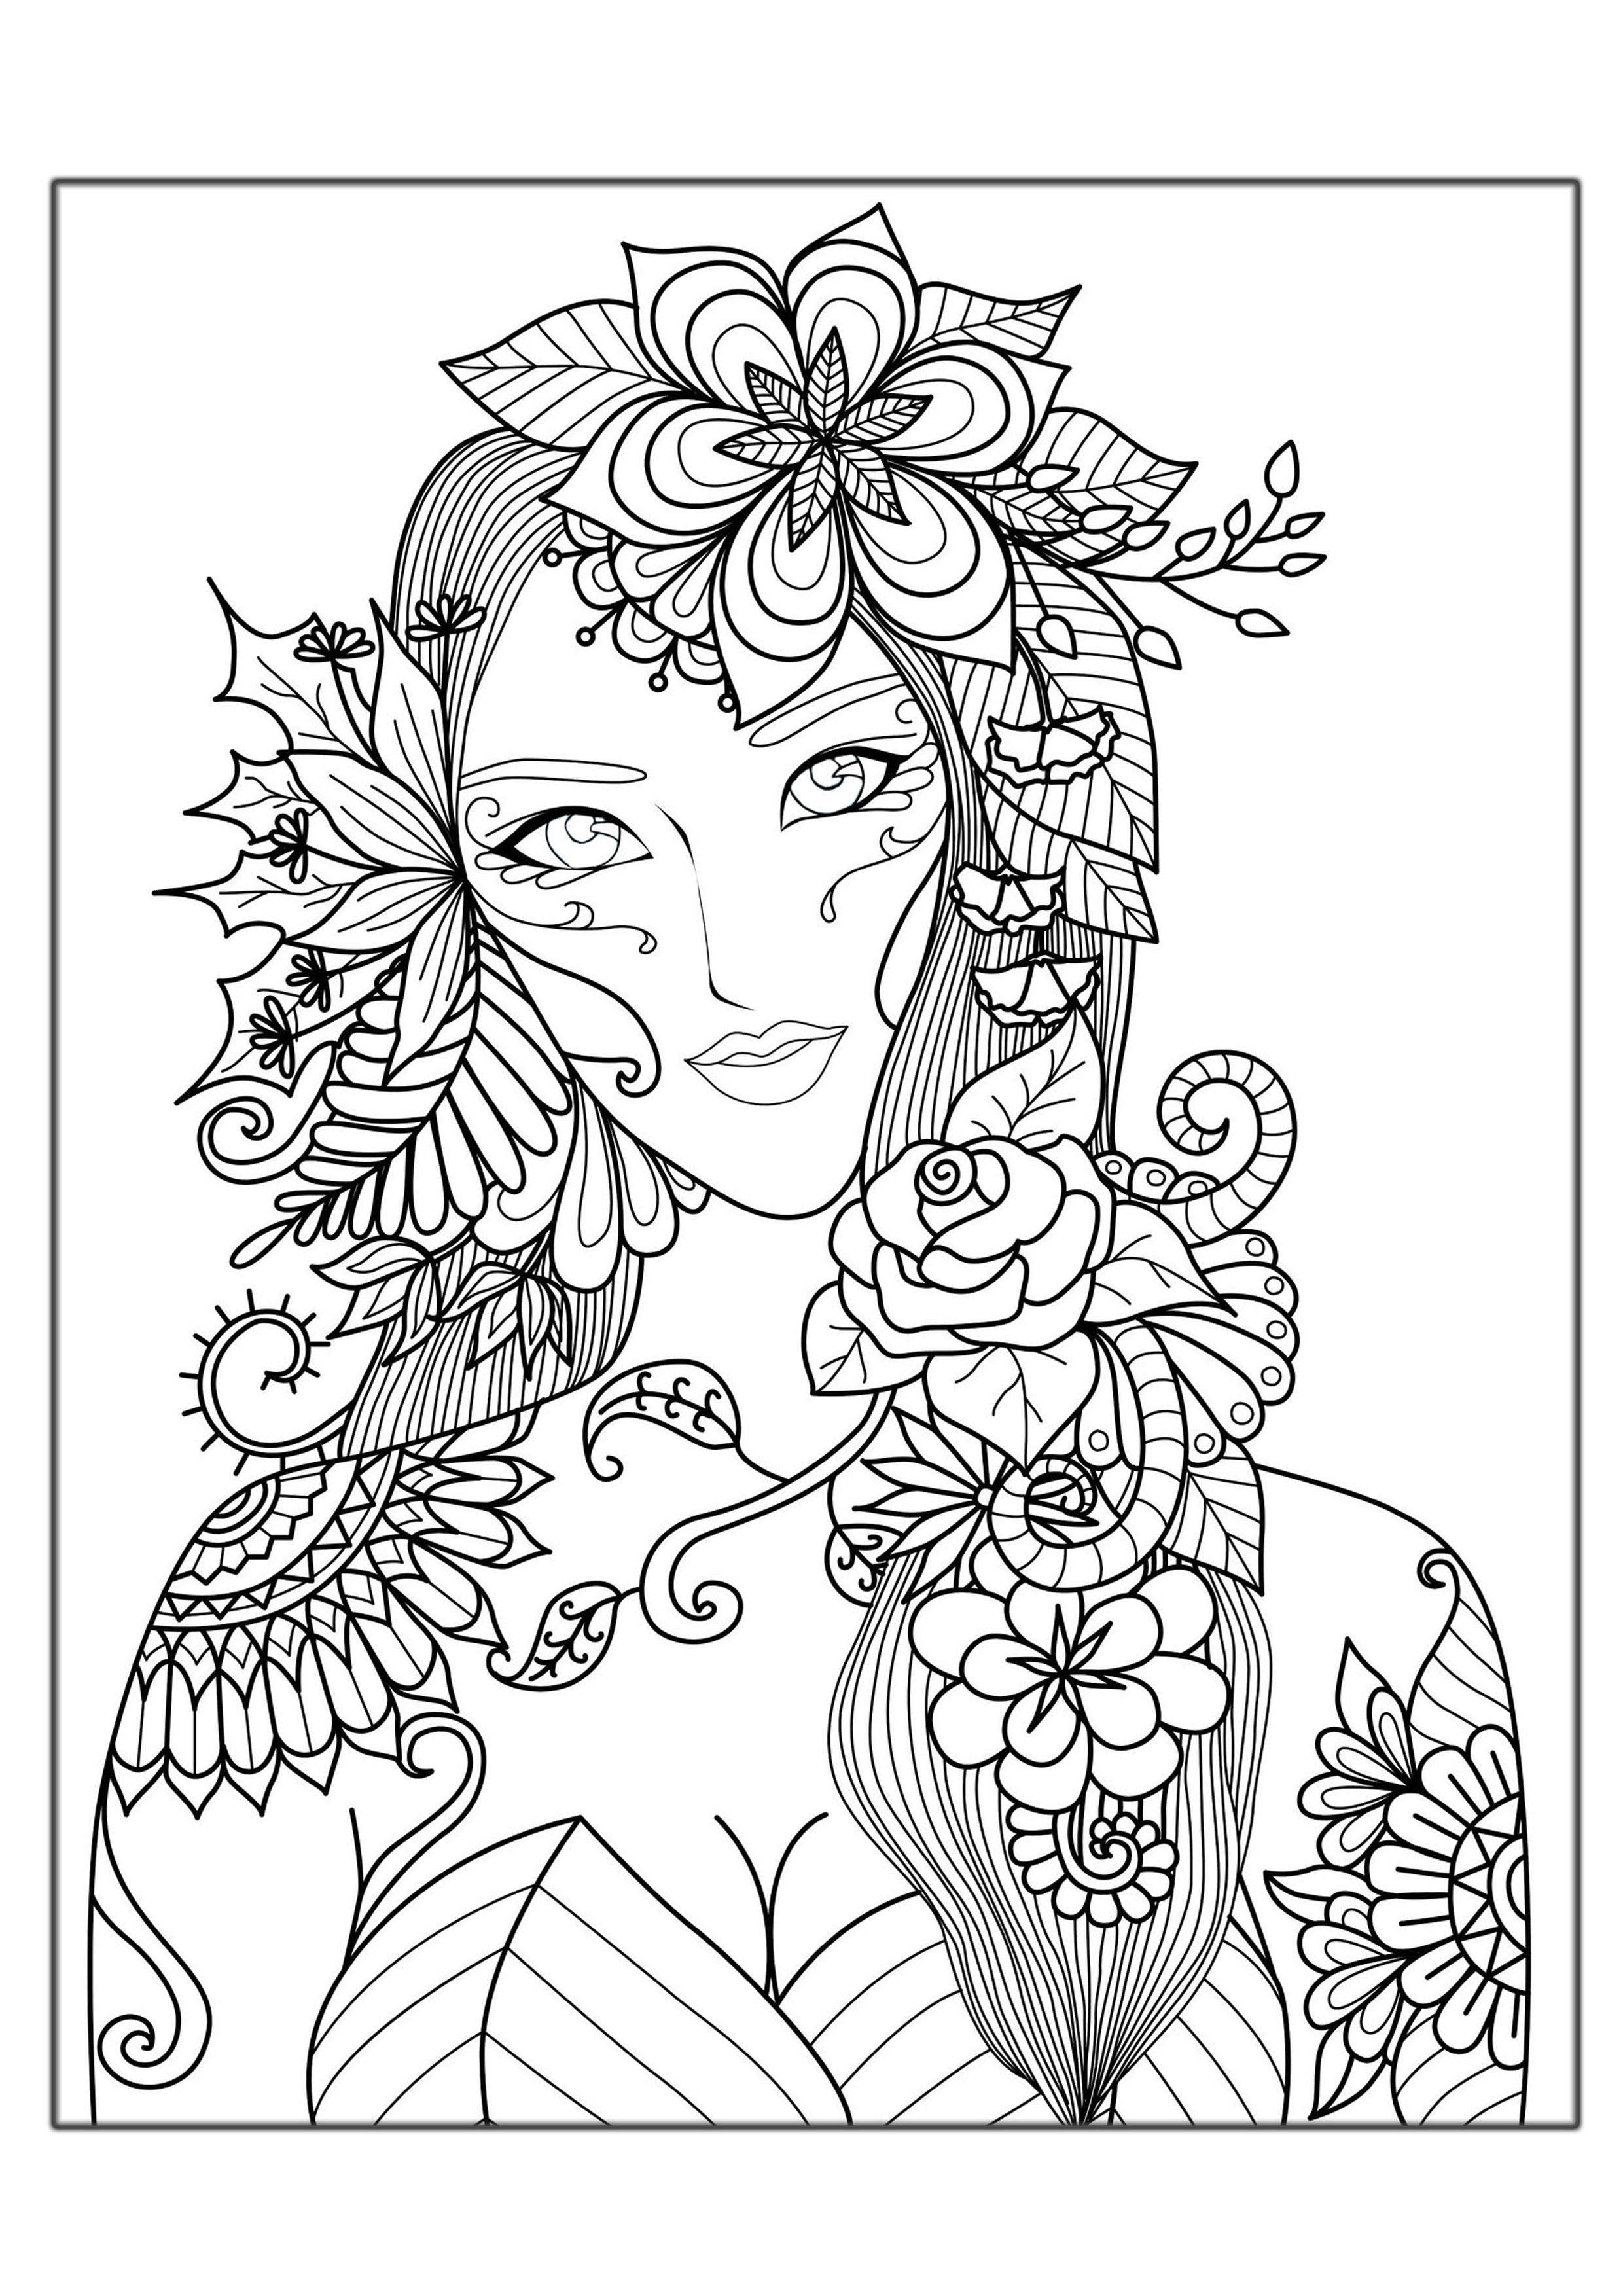 coloring pages of adults 10 toothy adult coloring pages printable off the cusp adults of coloring pages